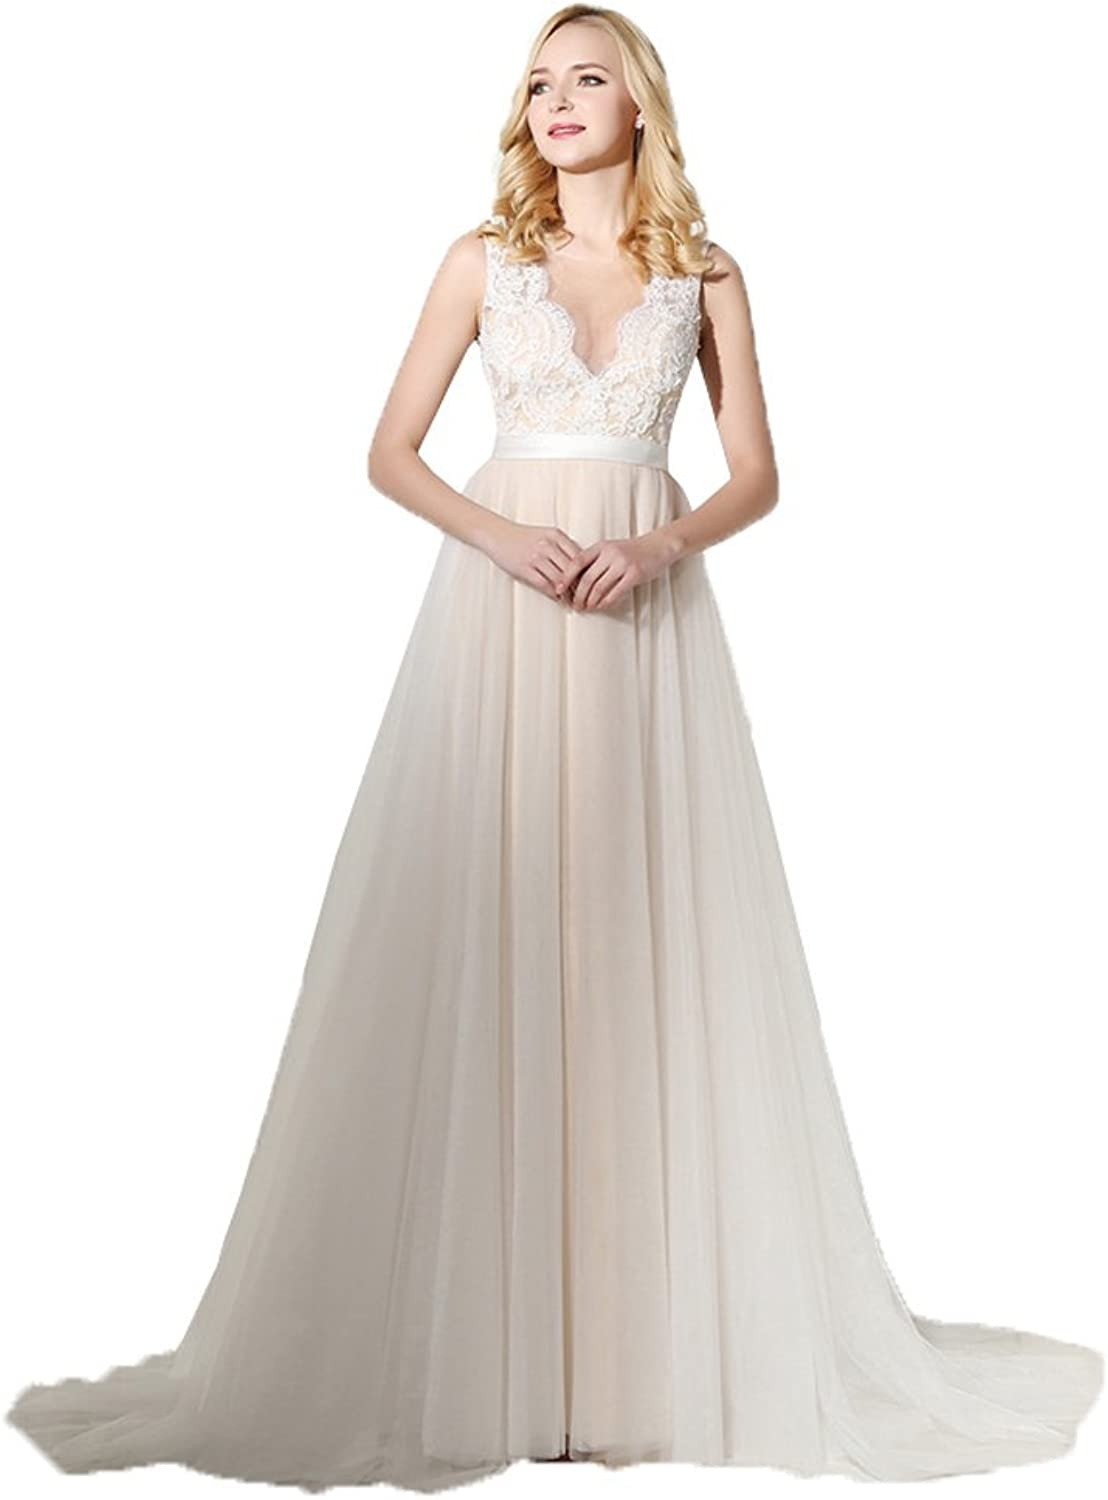 Onlybridal Women's Lace Long Prom Dress Tulle Beige Evening Dresses VNeck